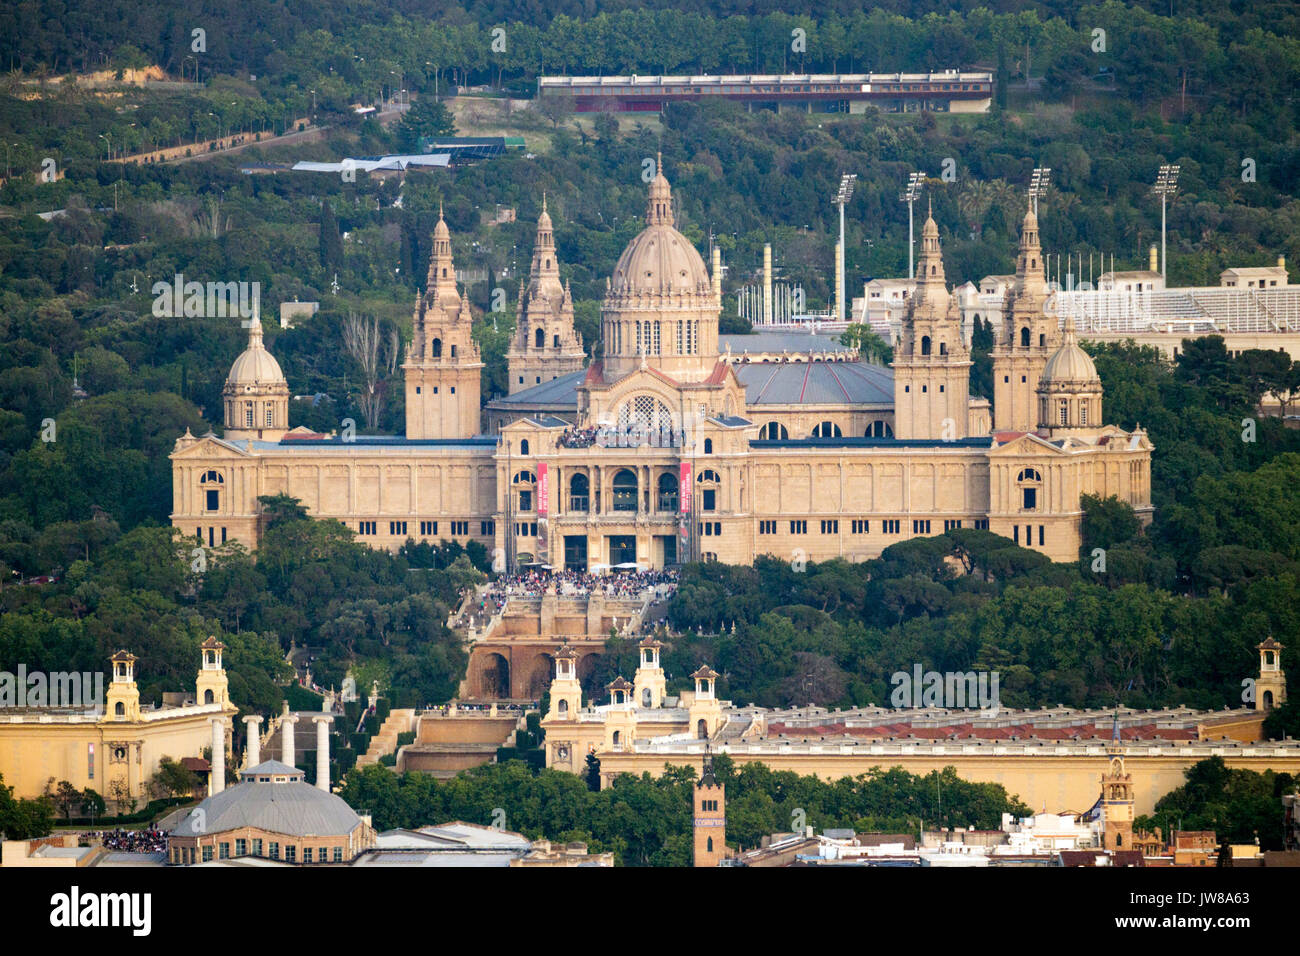 BARCELONA, SPAIN - MAY 21, 2016: Front view of the National Art Museum of Catalonia in Barcelona. - Stock Image